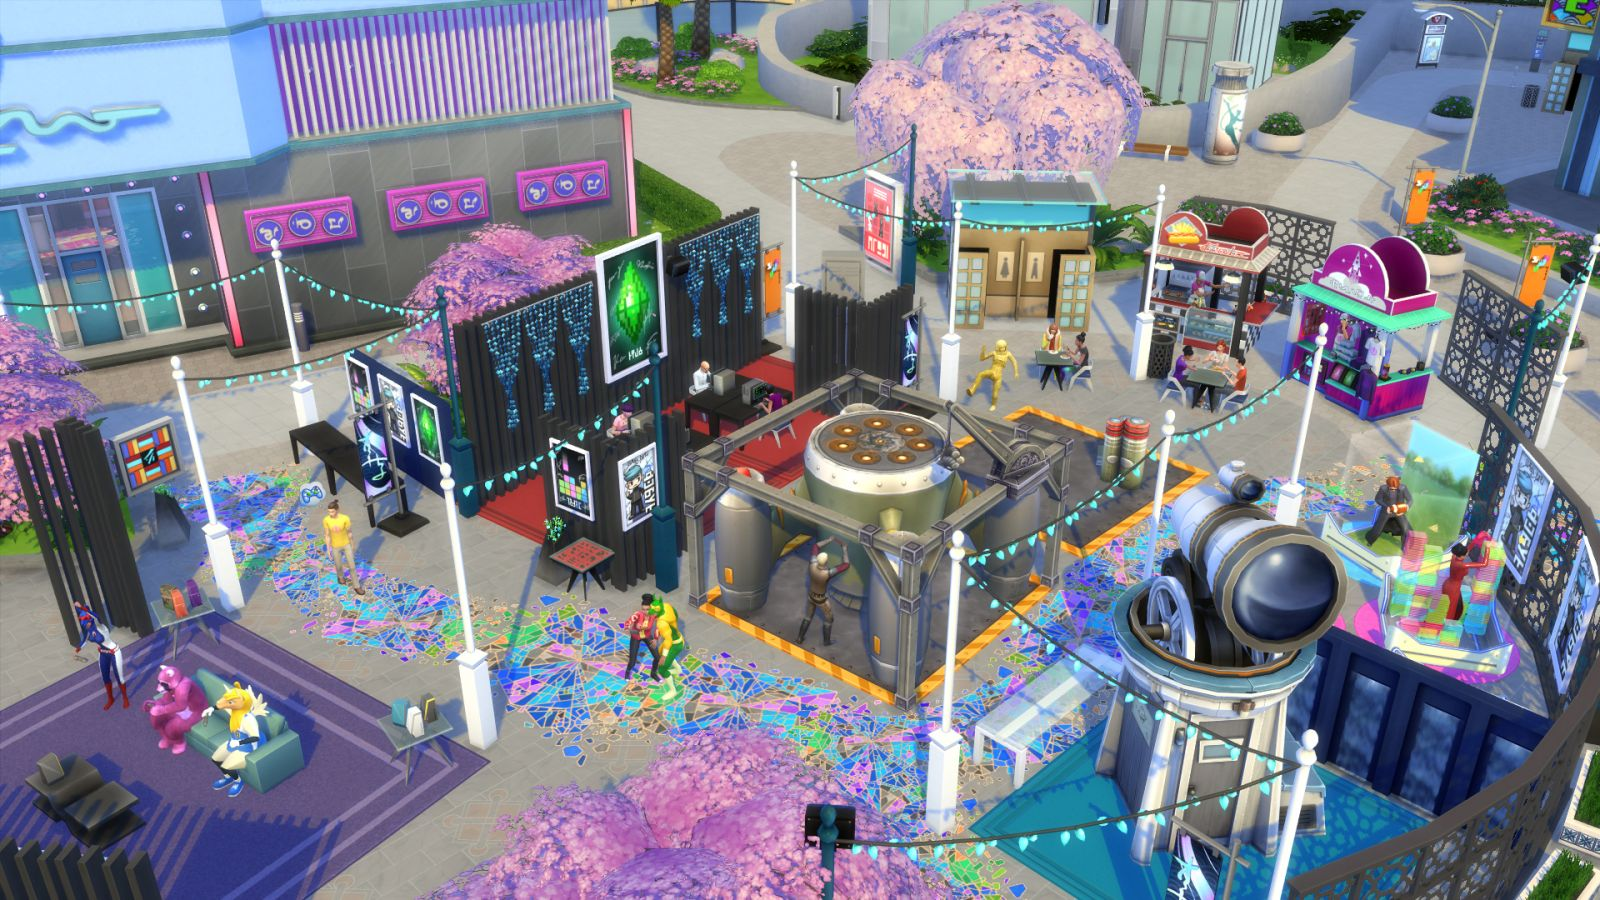 Sims 4 Cheats - The sims 4 city living: lauch